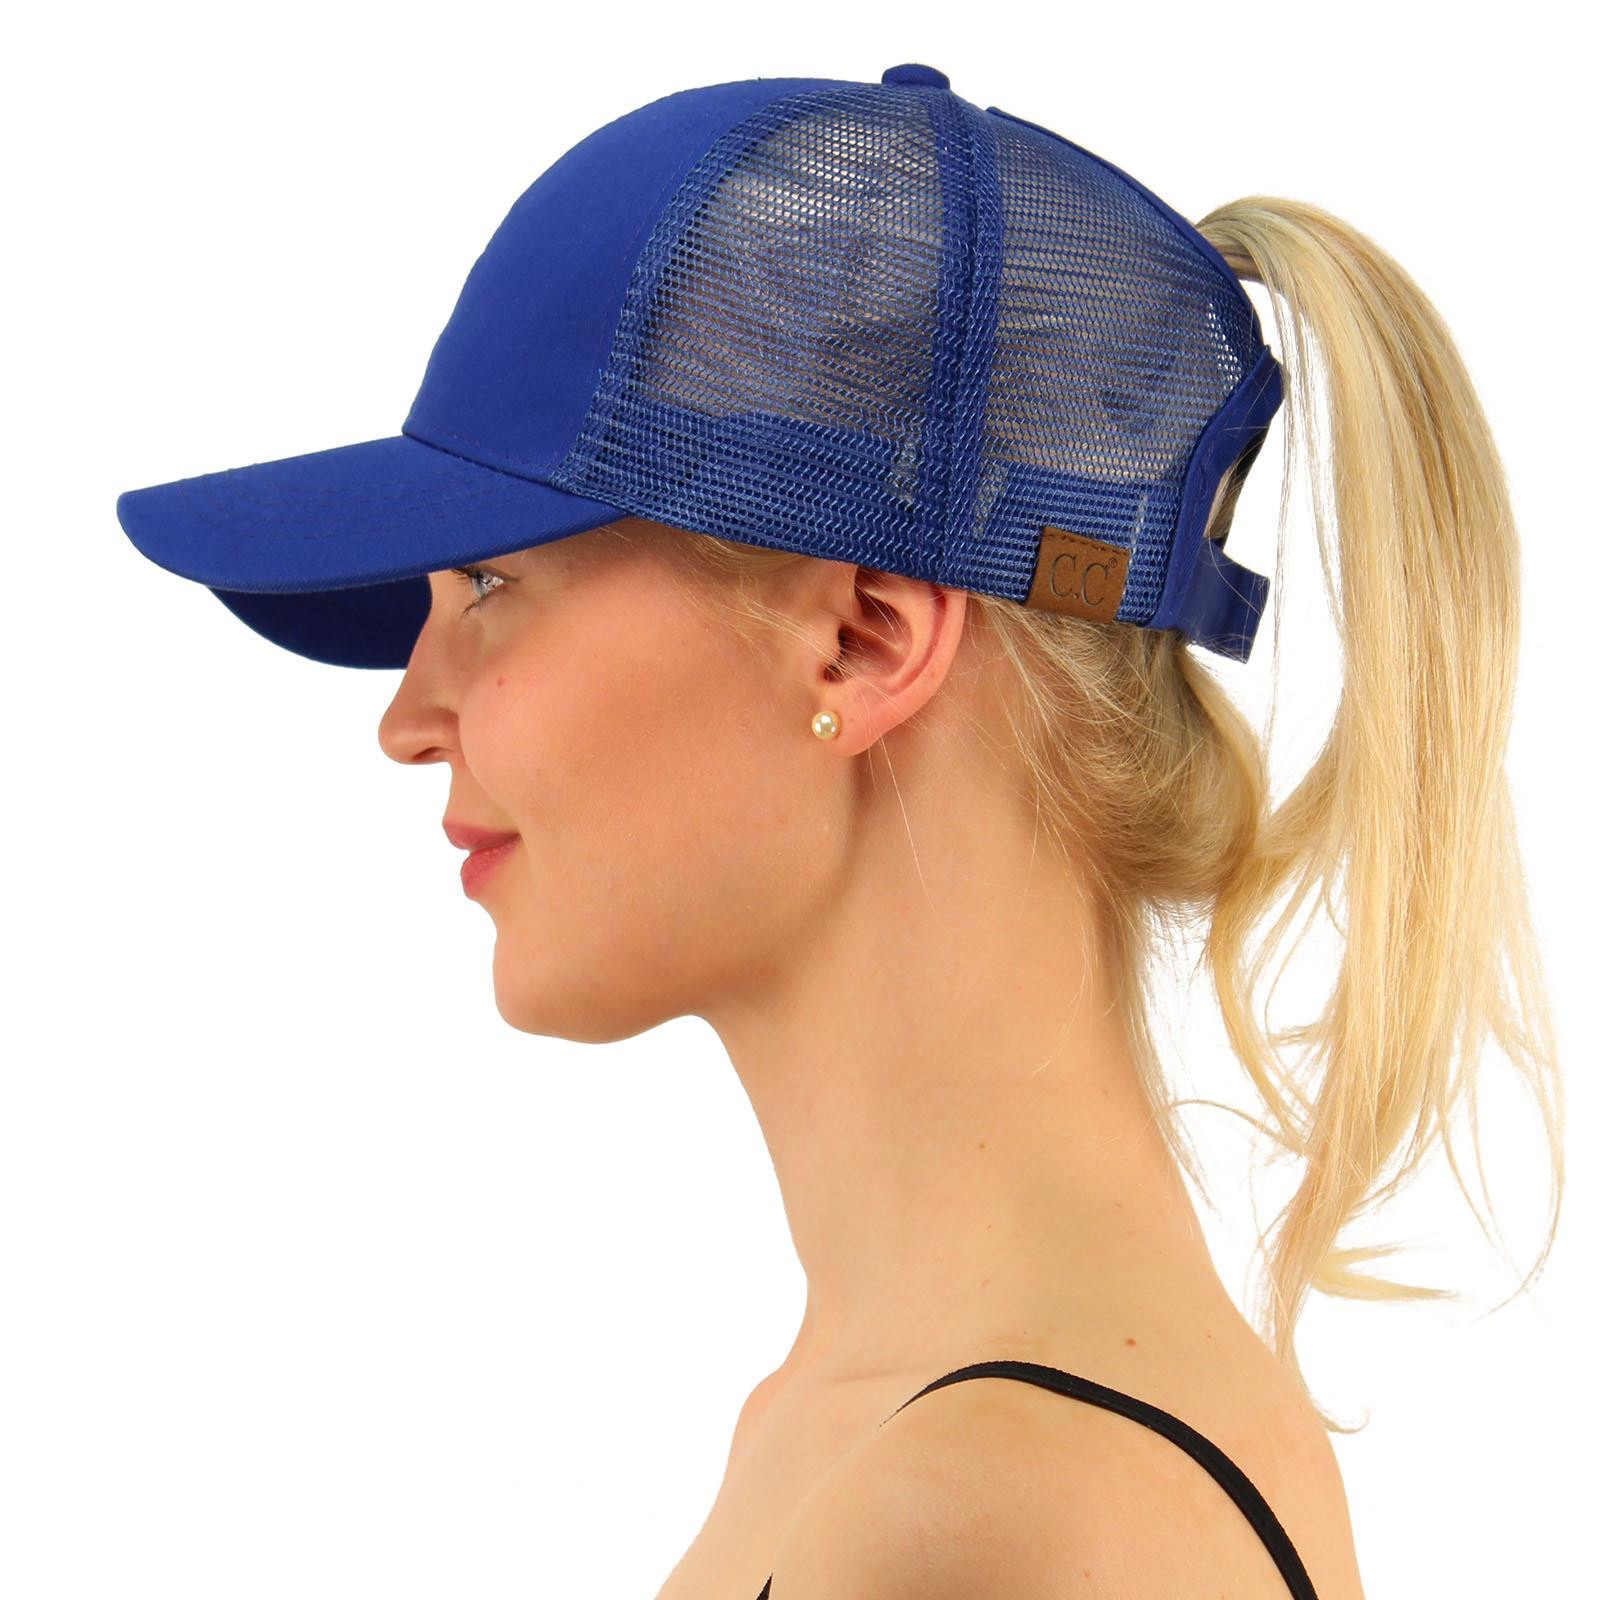 Hats for Buns Best Of C C Ponytail Messy Buns Trucker Ponycaps Plain Baseball Of Wonderful 40 Photos Hats for Buns